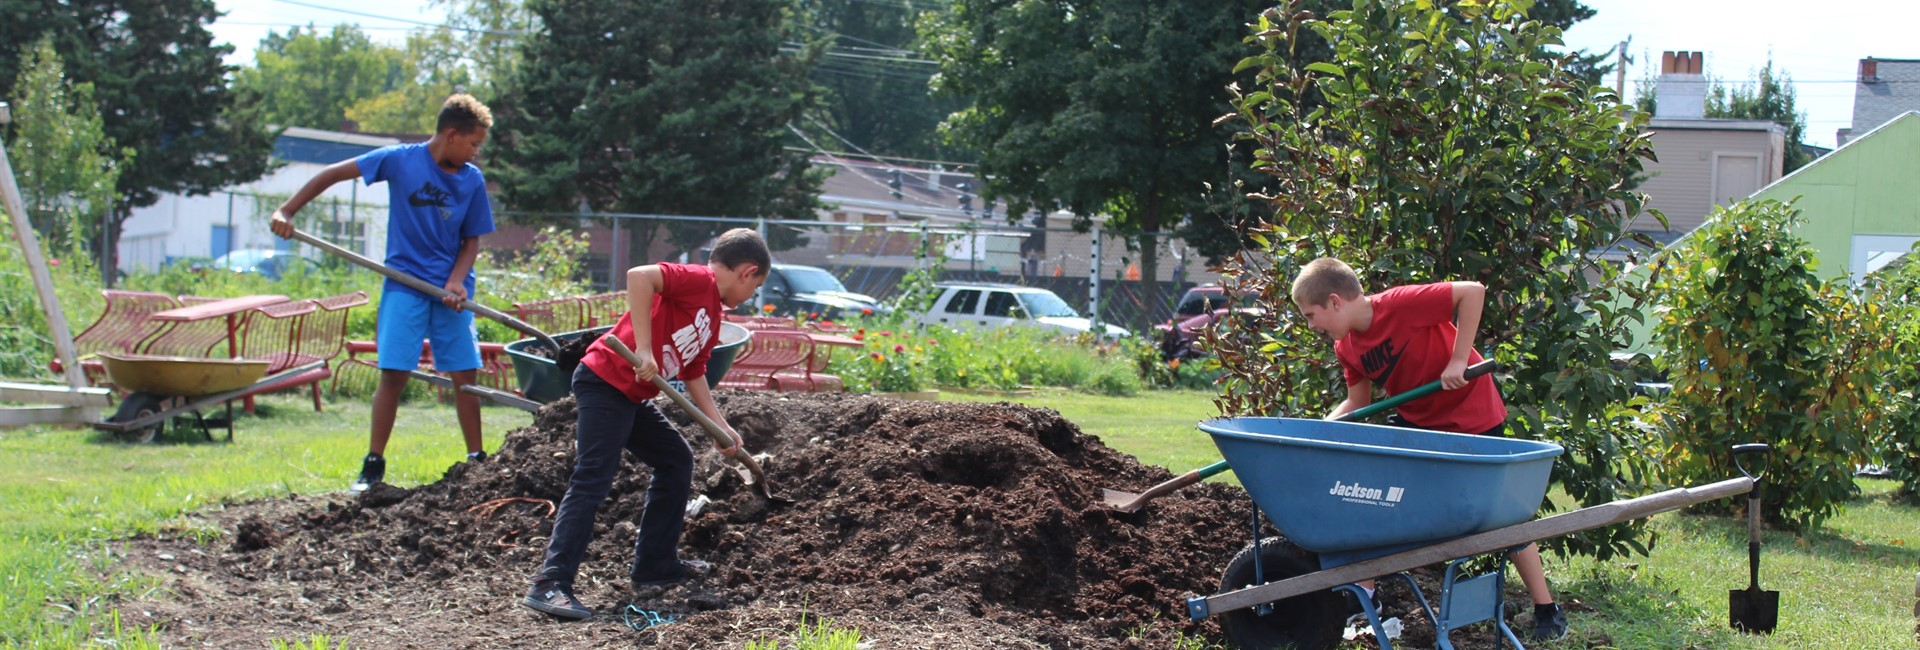 Students in the garden club, work on moving a pile of dirt.